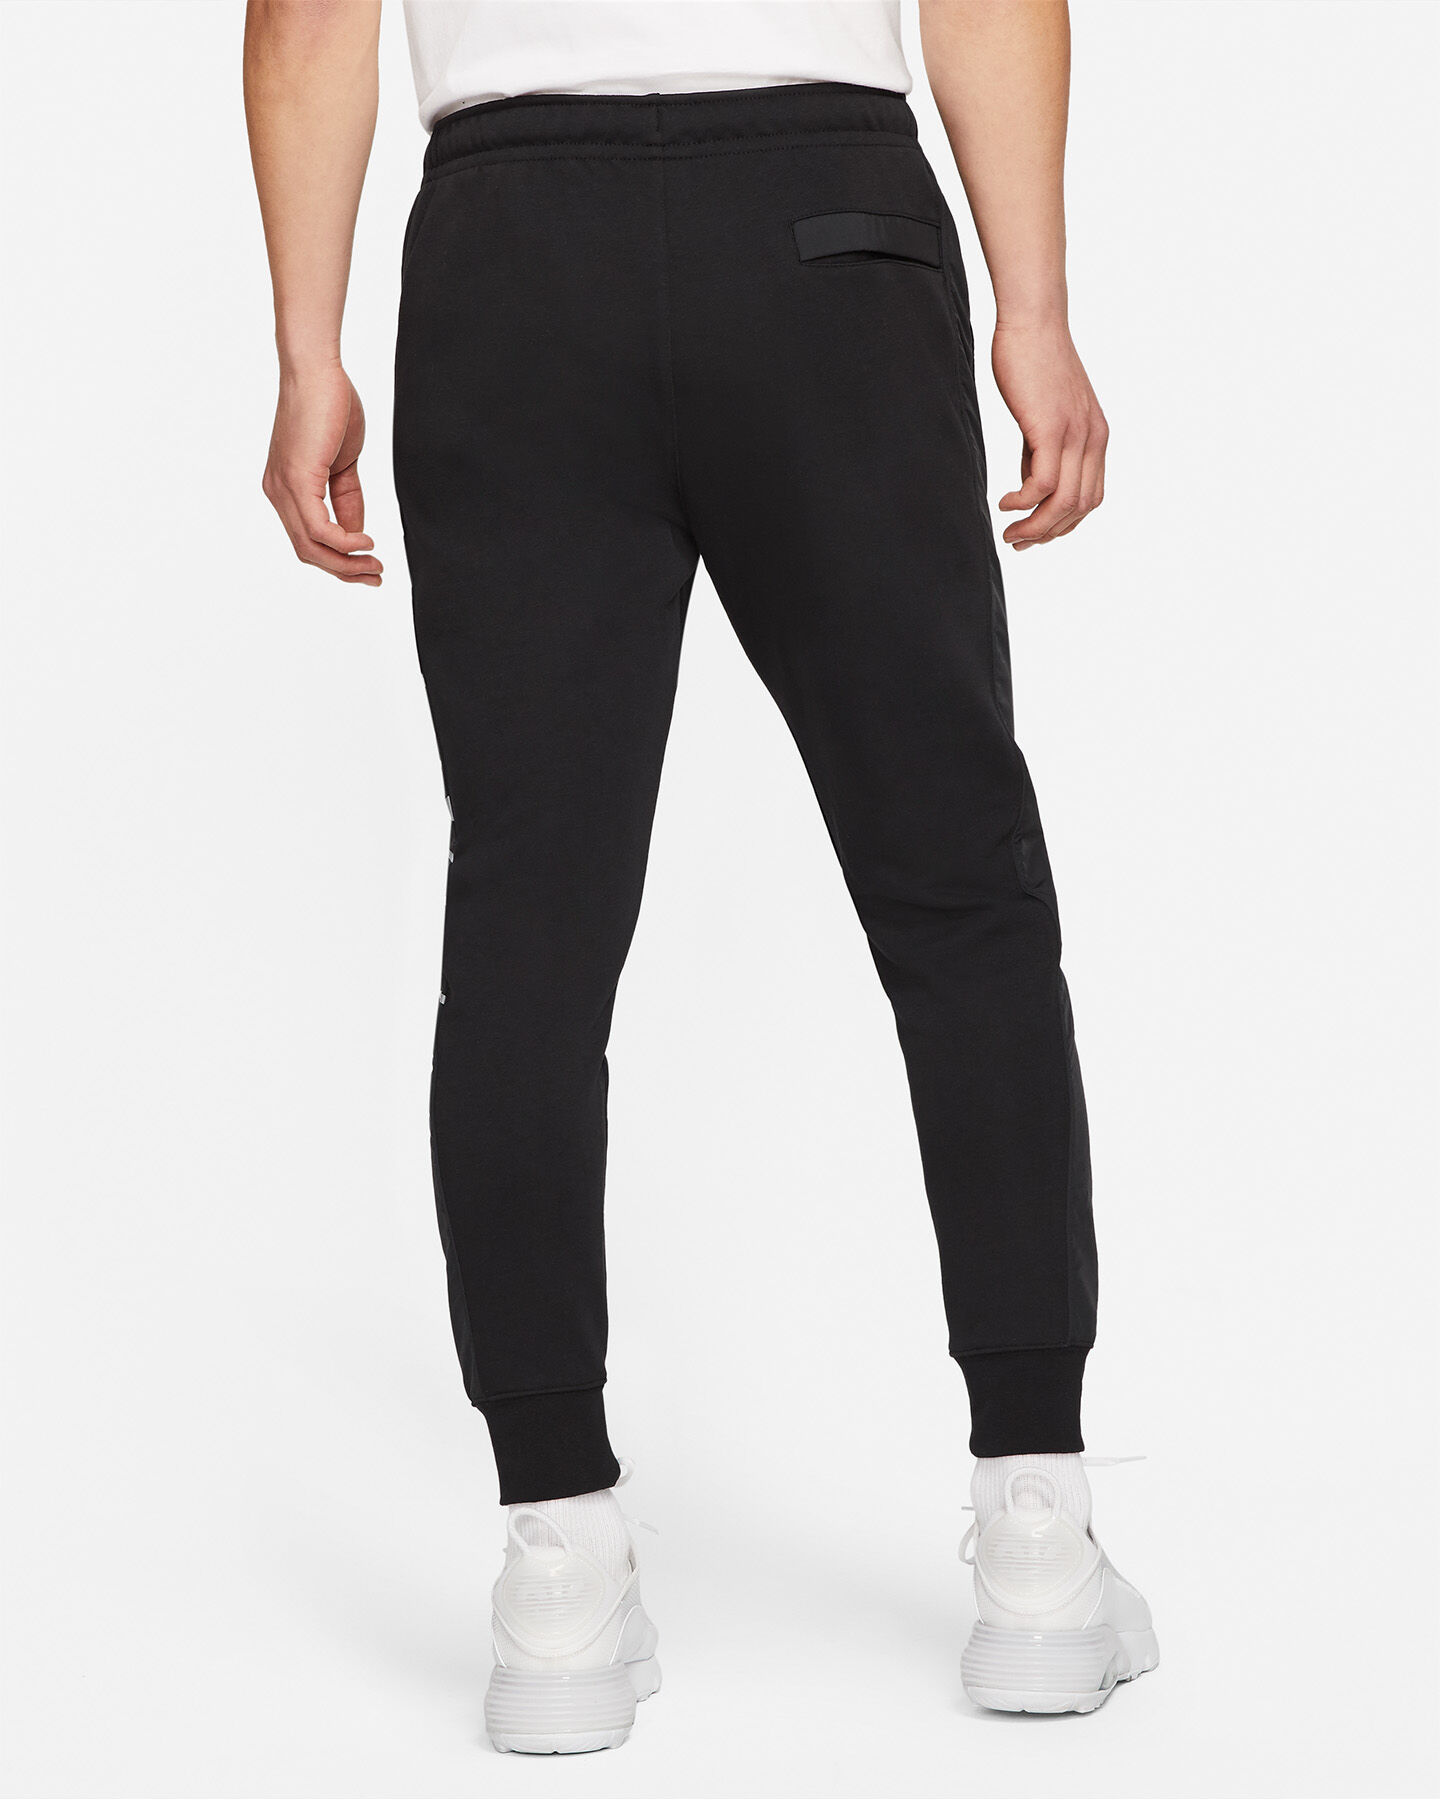 Pantalone NIKE SNL M S5269879 scatto 1